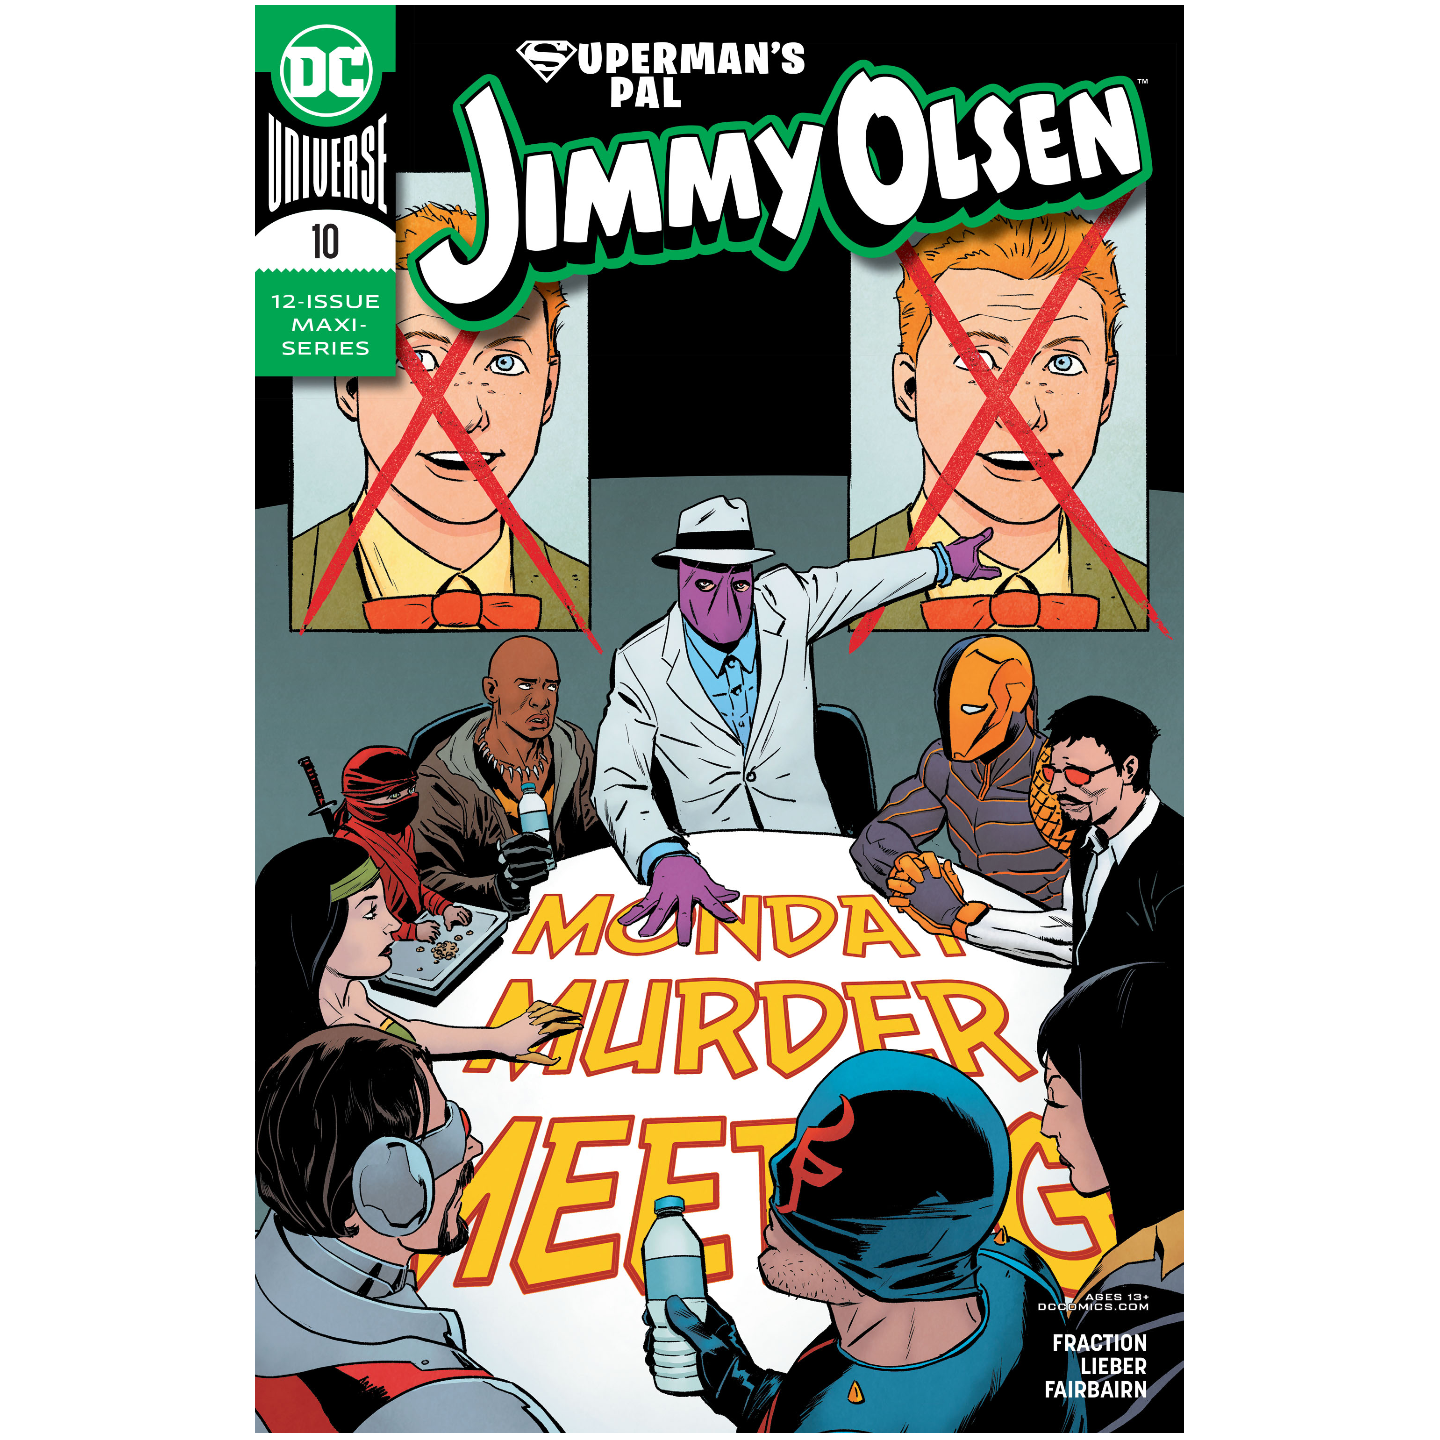 SUPERMANS PAL JIMMY OLSEN 10 OF 12